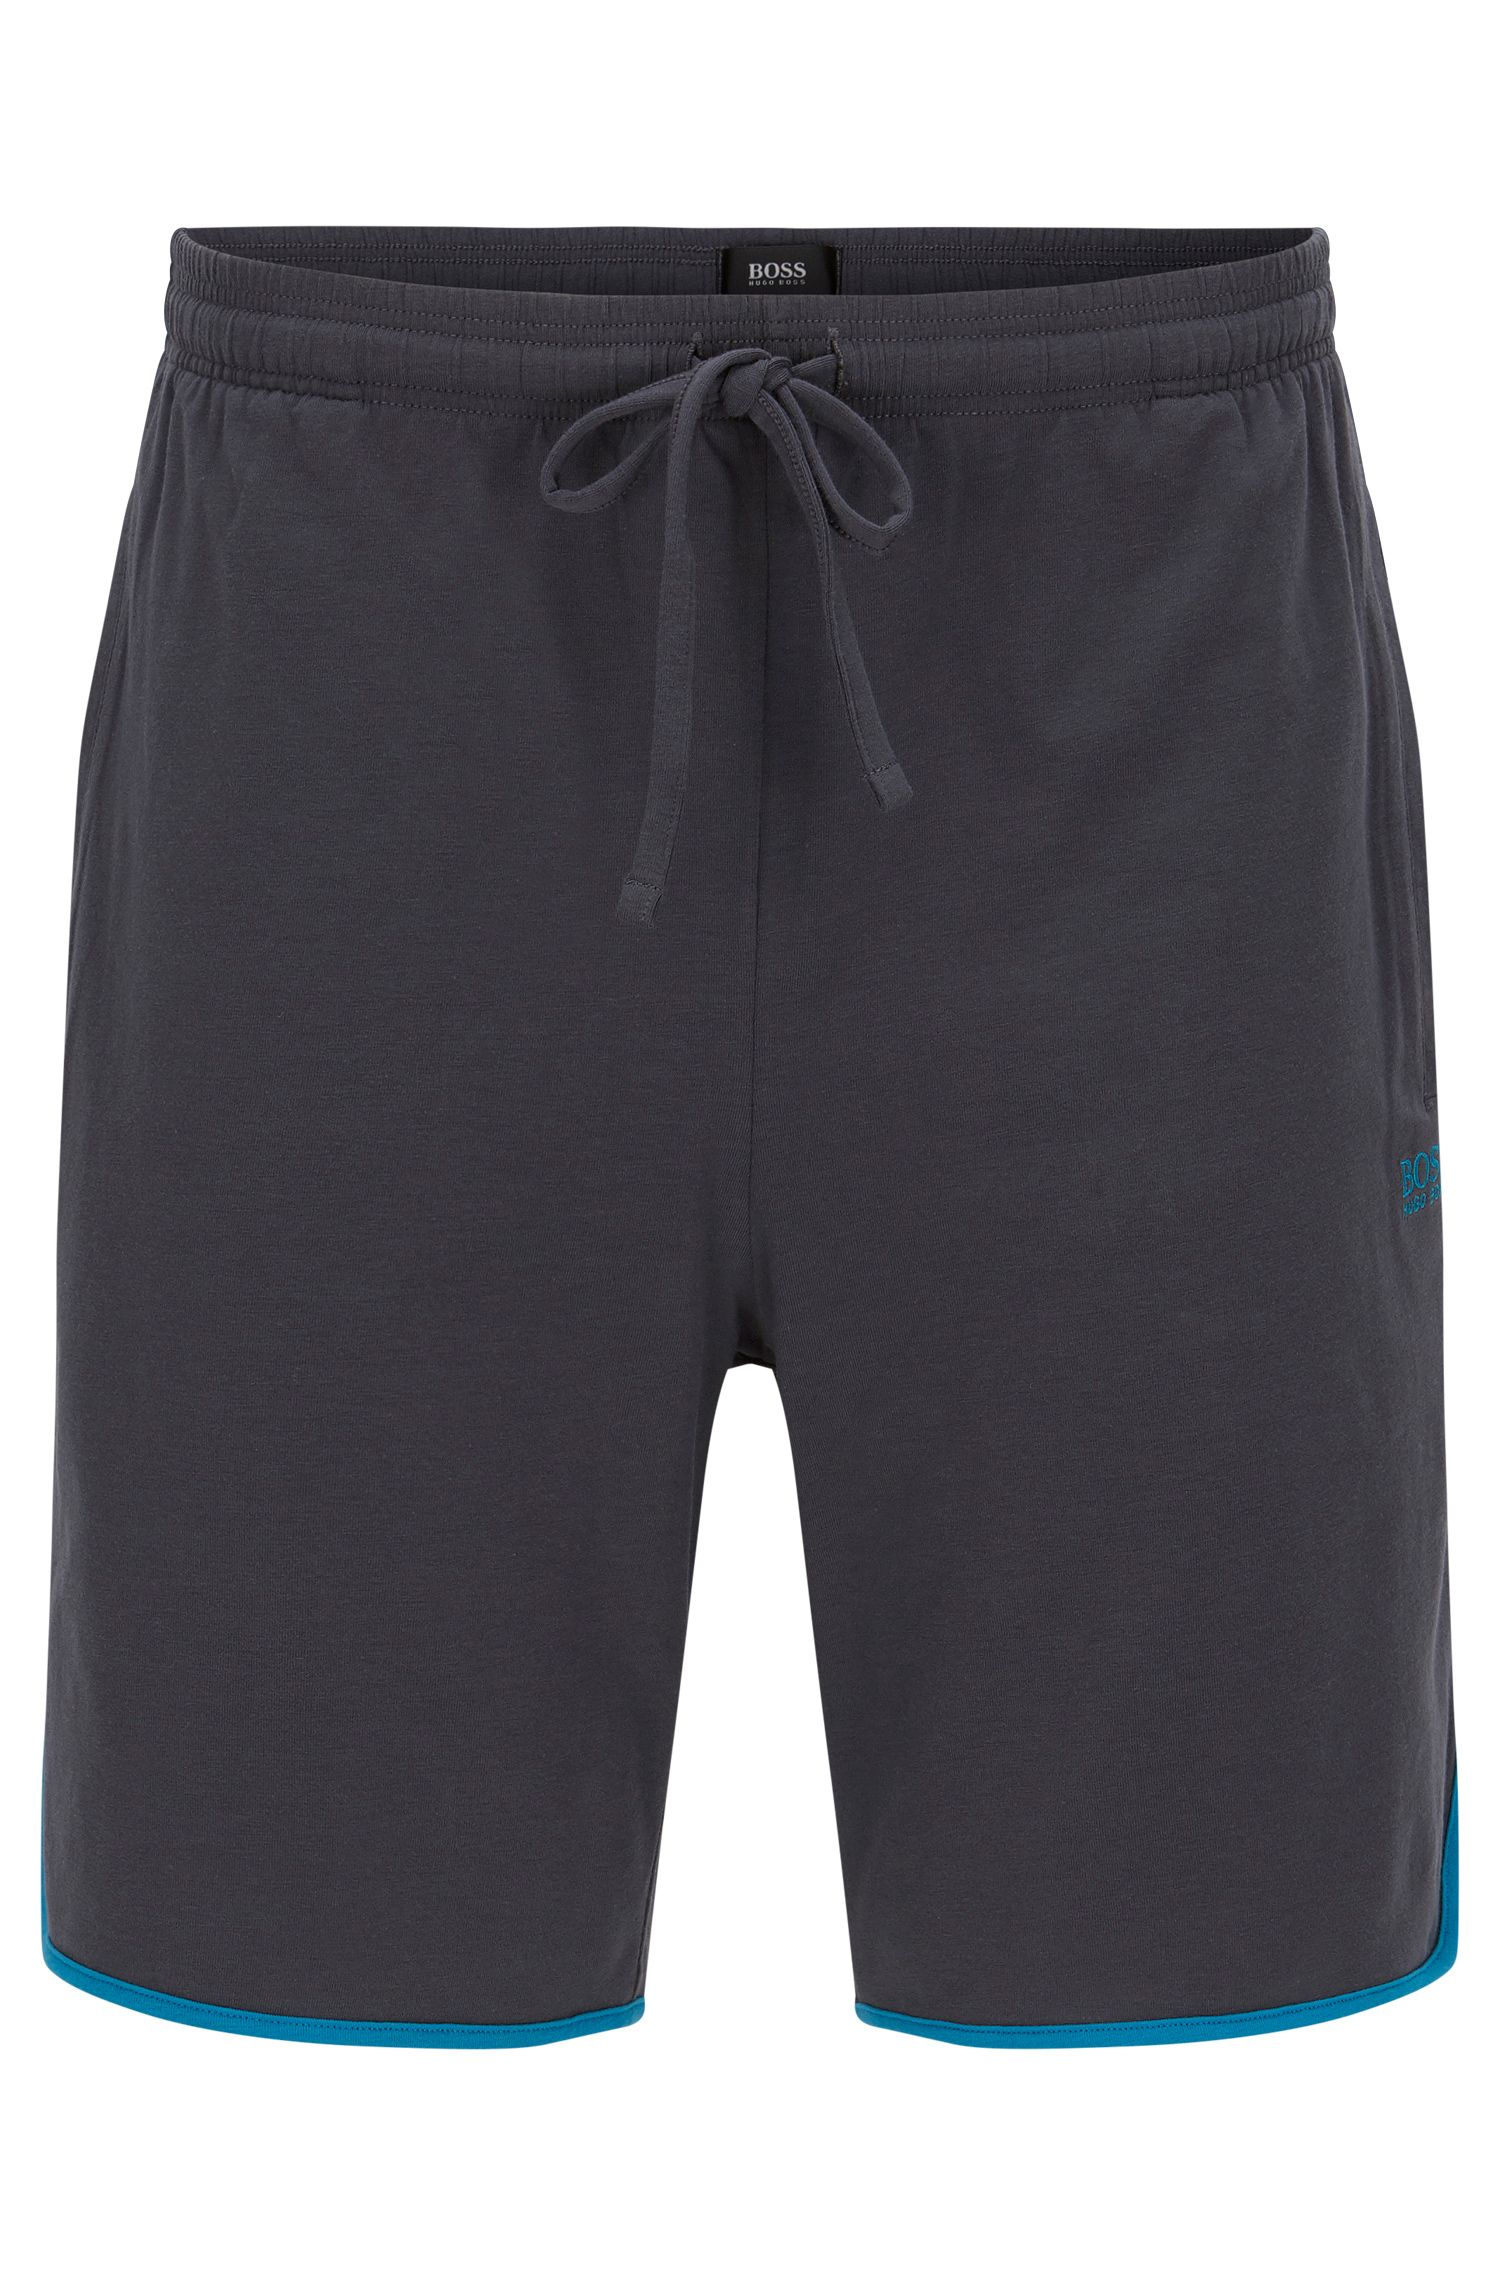 Boxer en coton stretch : « Short Pant CW »